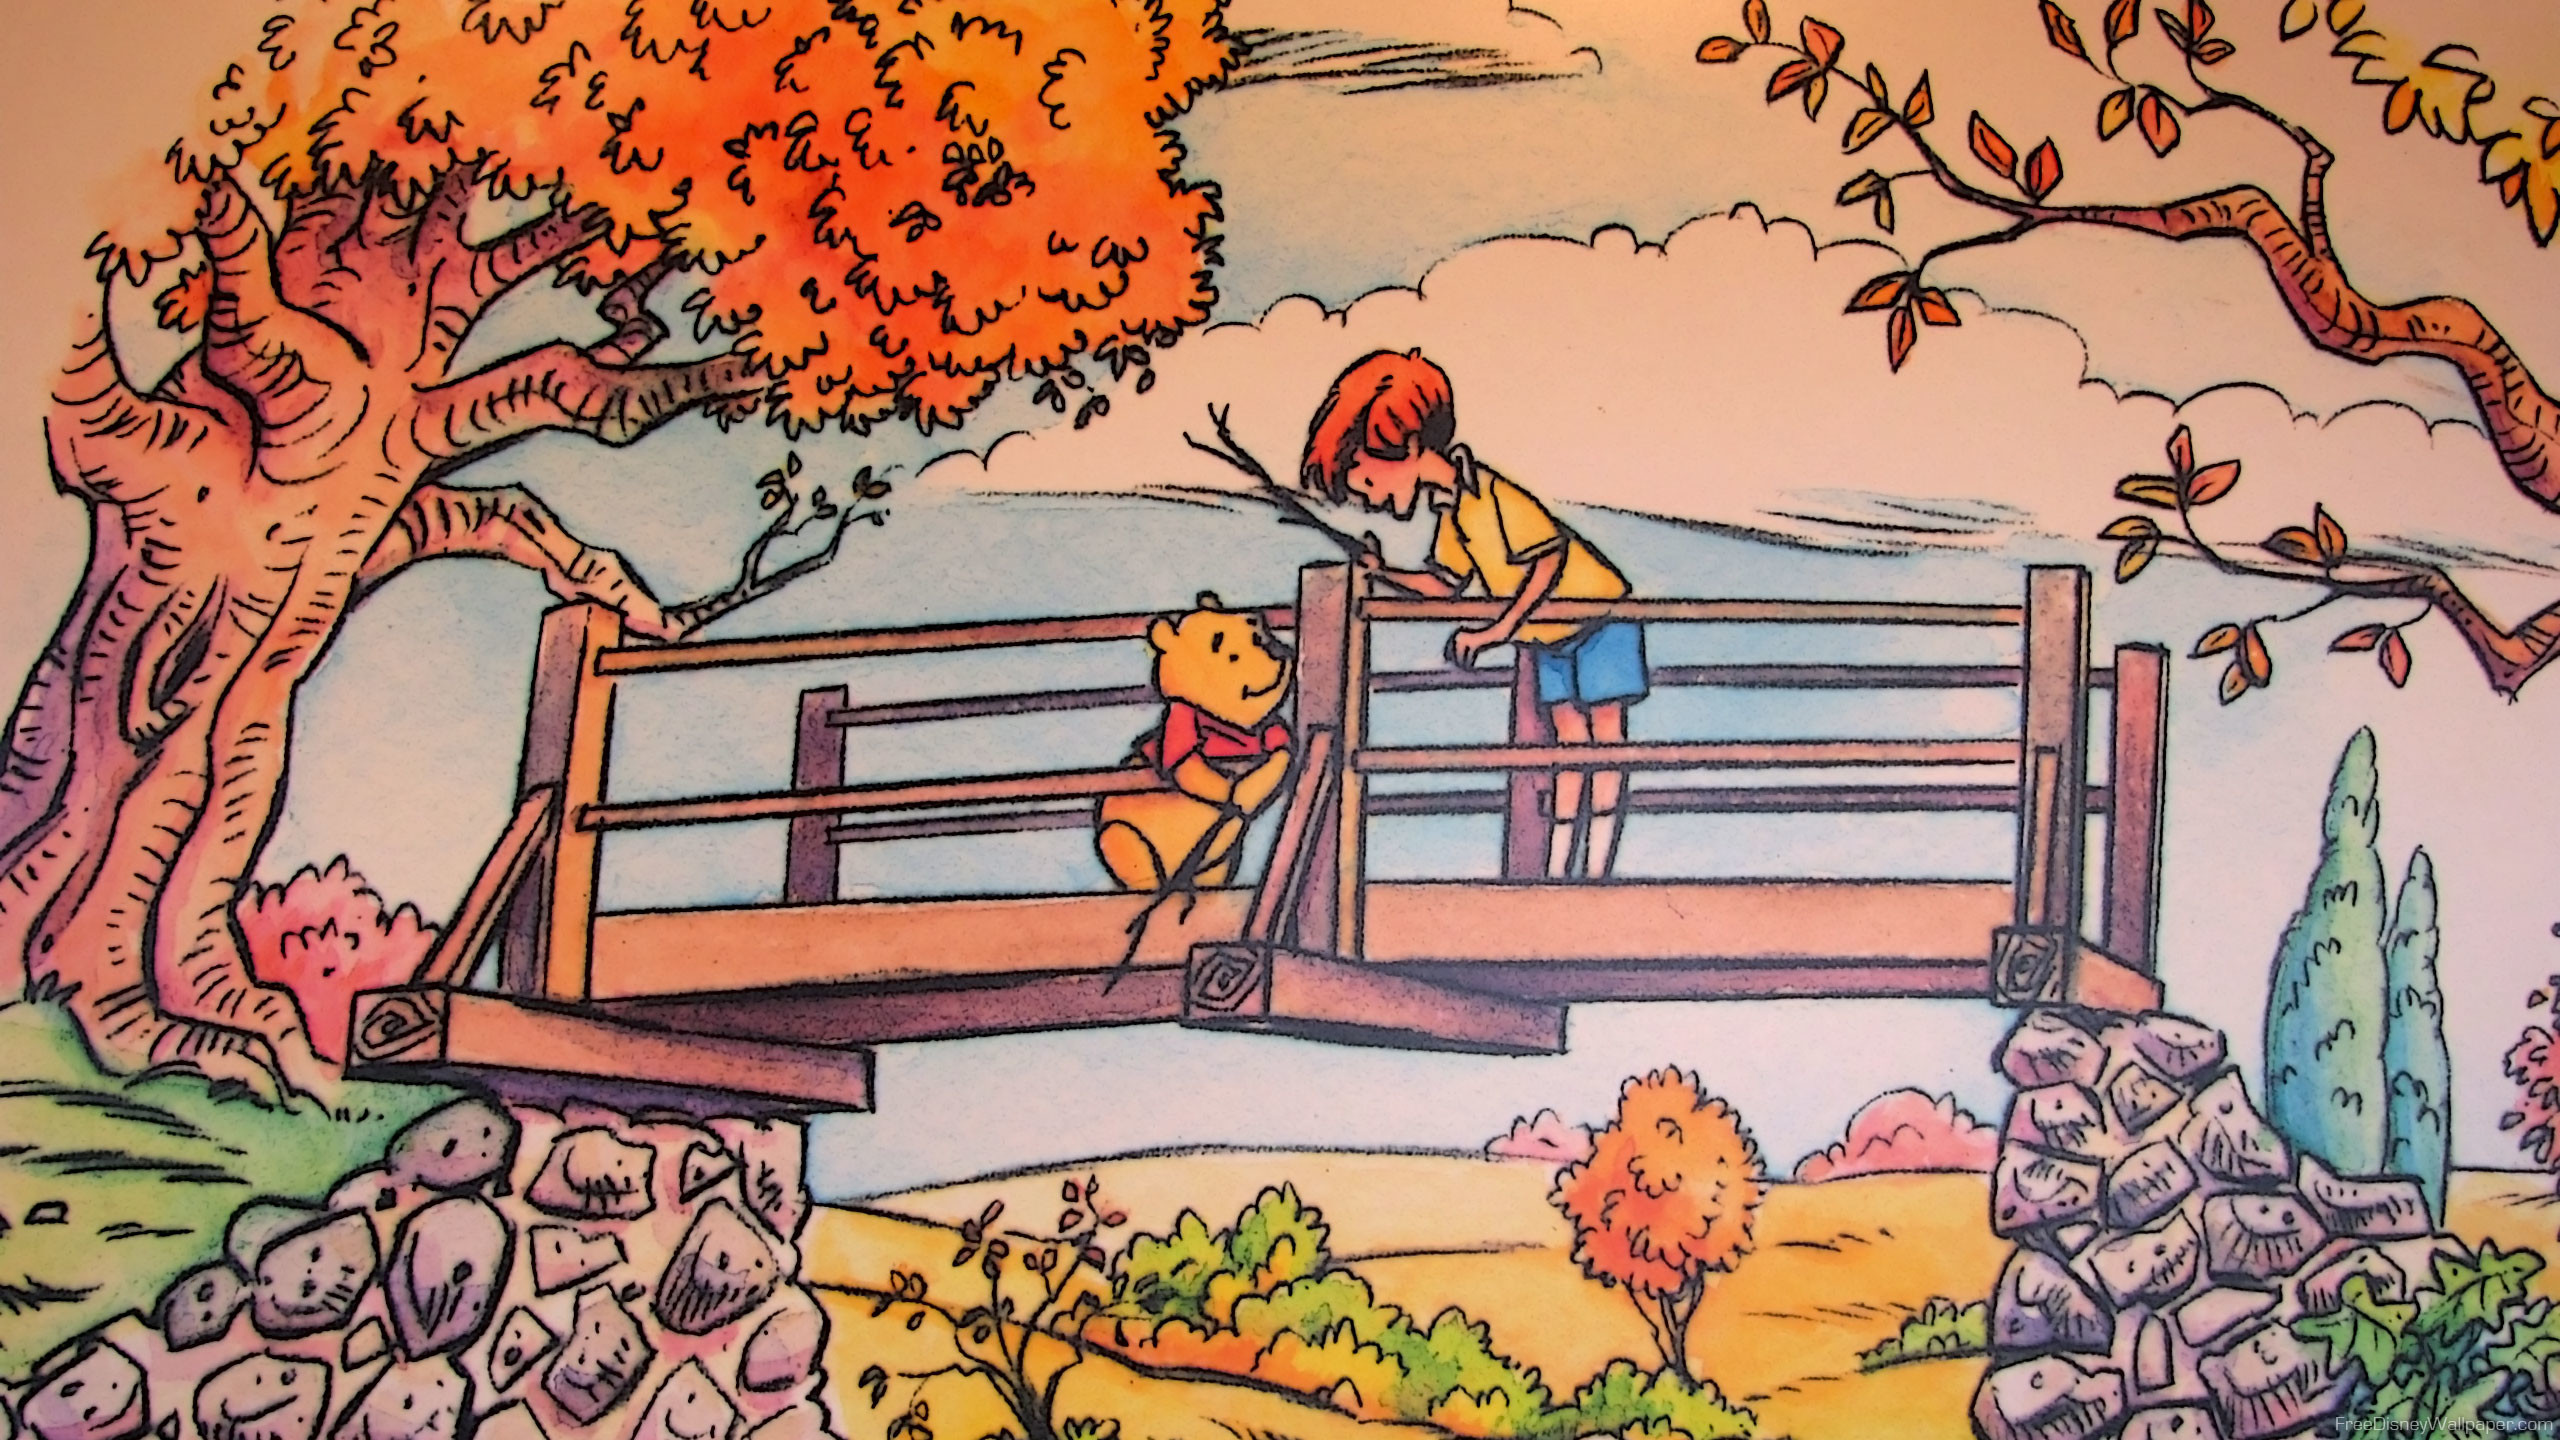 Res: 2560x1440, Winnie the pooh thanksgiving dinner with. Feast wallpaper picture